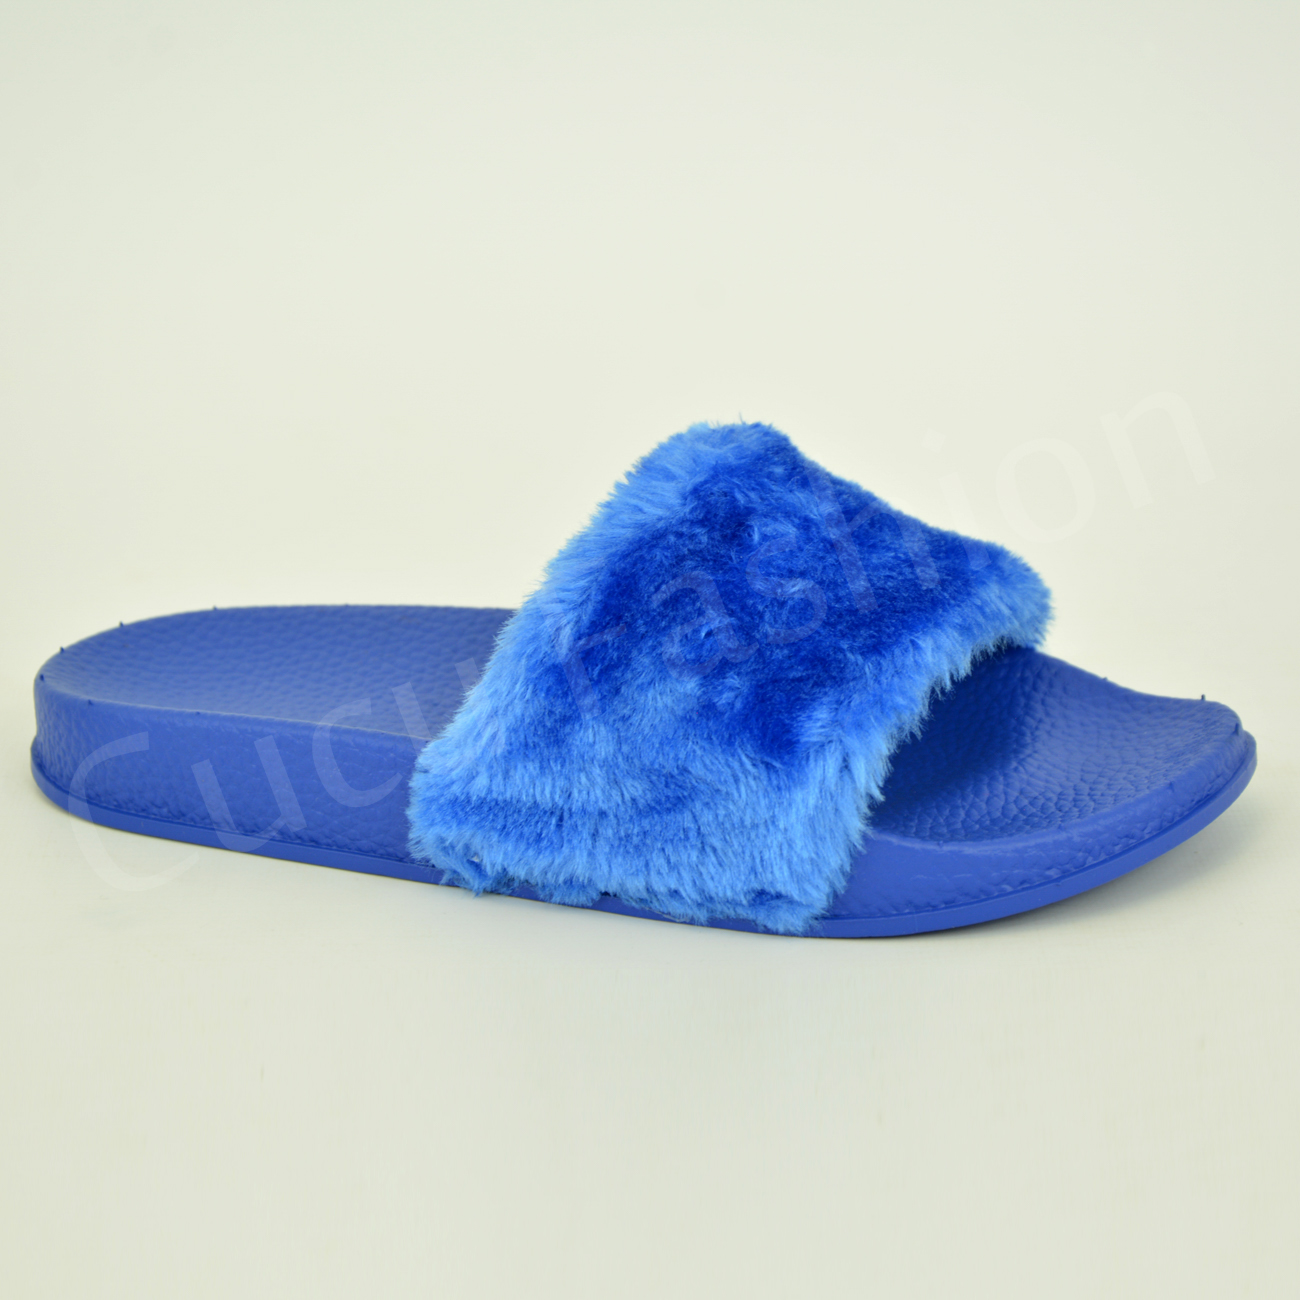 Shop Target for Slippers you will love at great low prices. Spend $35+ or use your REDcard & get free 2-day shipping on most items or same-day pick-up in store.